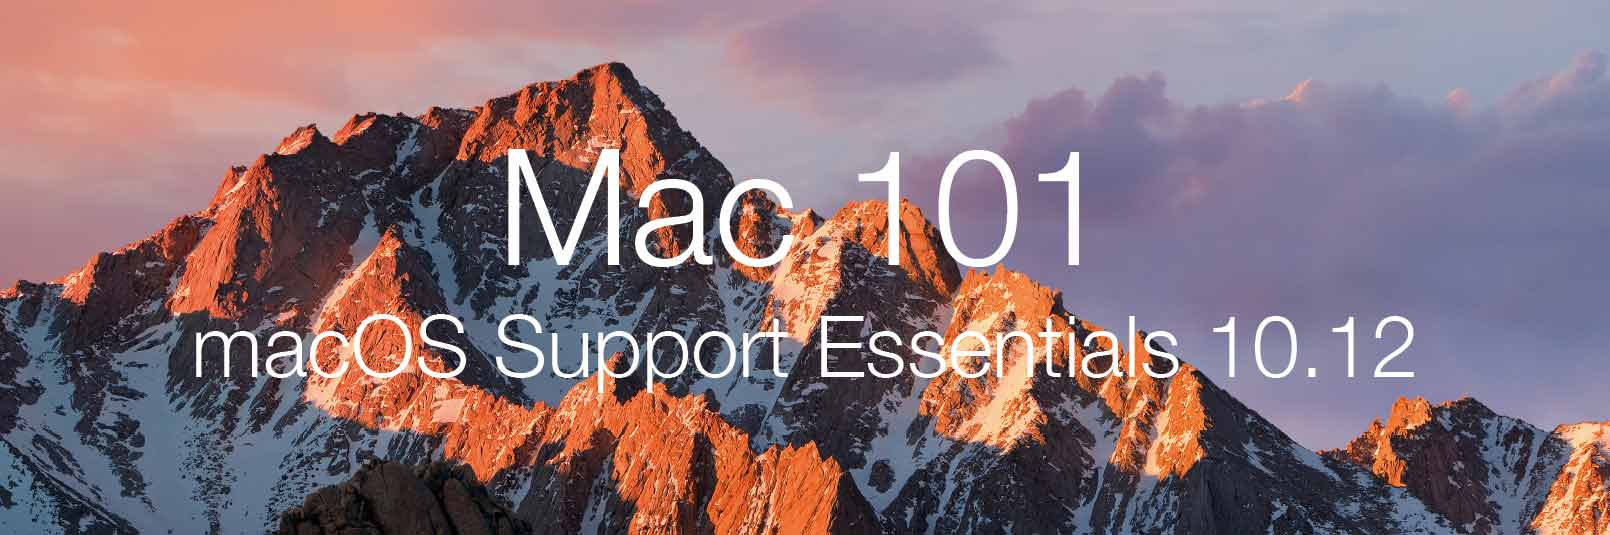 Kurs macOS Support Essentials 10.12